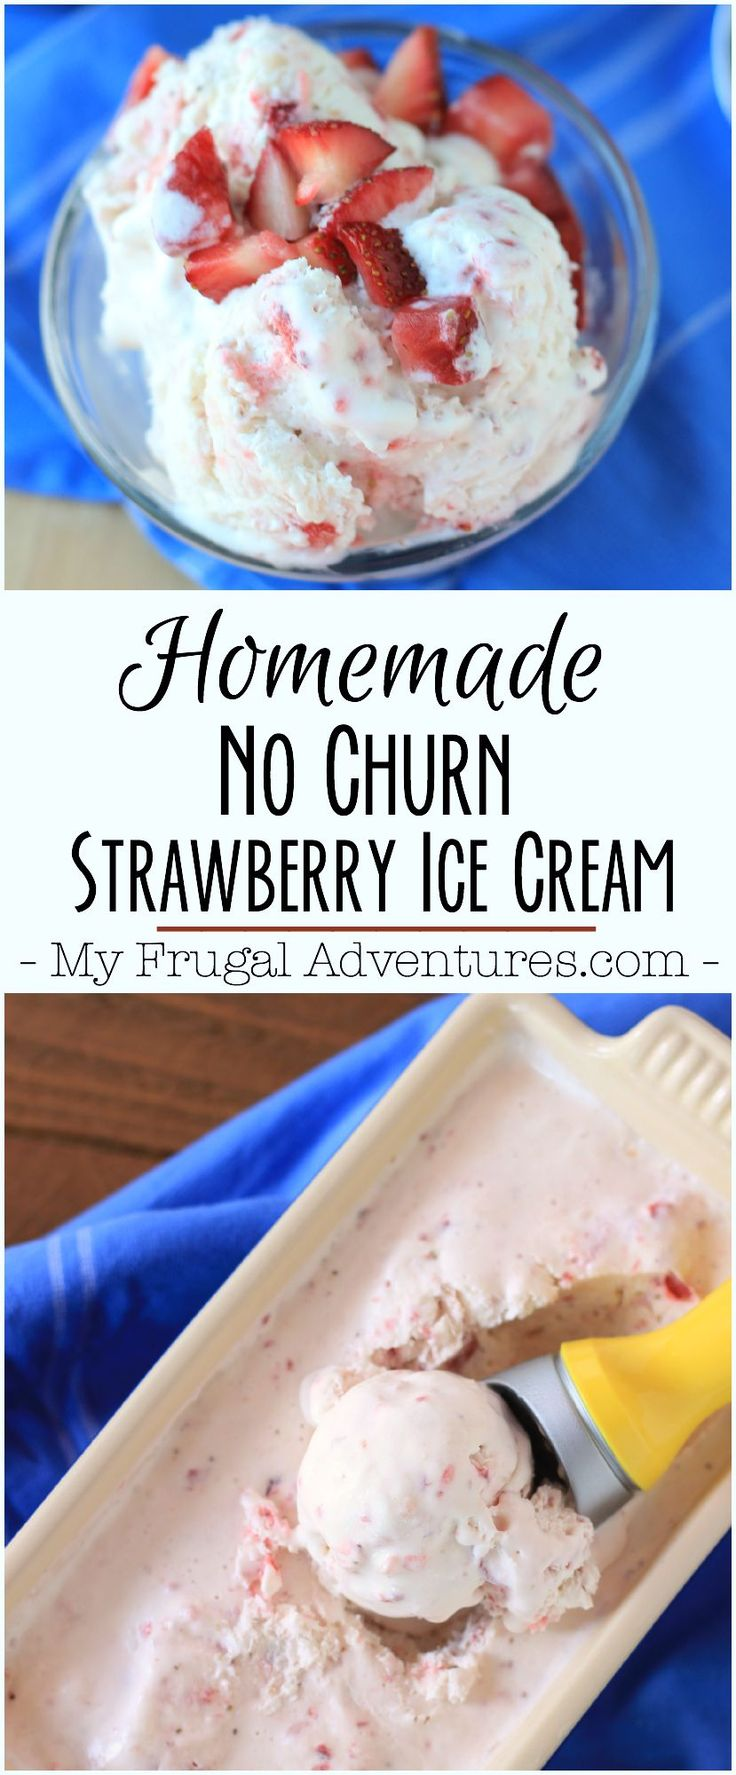 Quick 3 ingredient strawberry ice cream recipe.  So fresh, creamy and absolutely delicious!